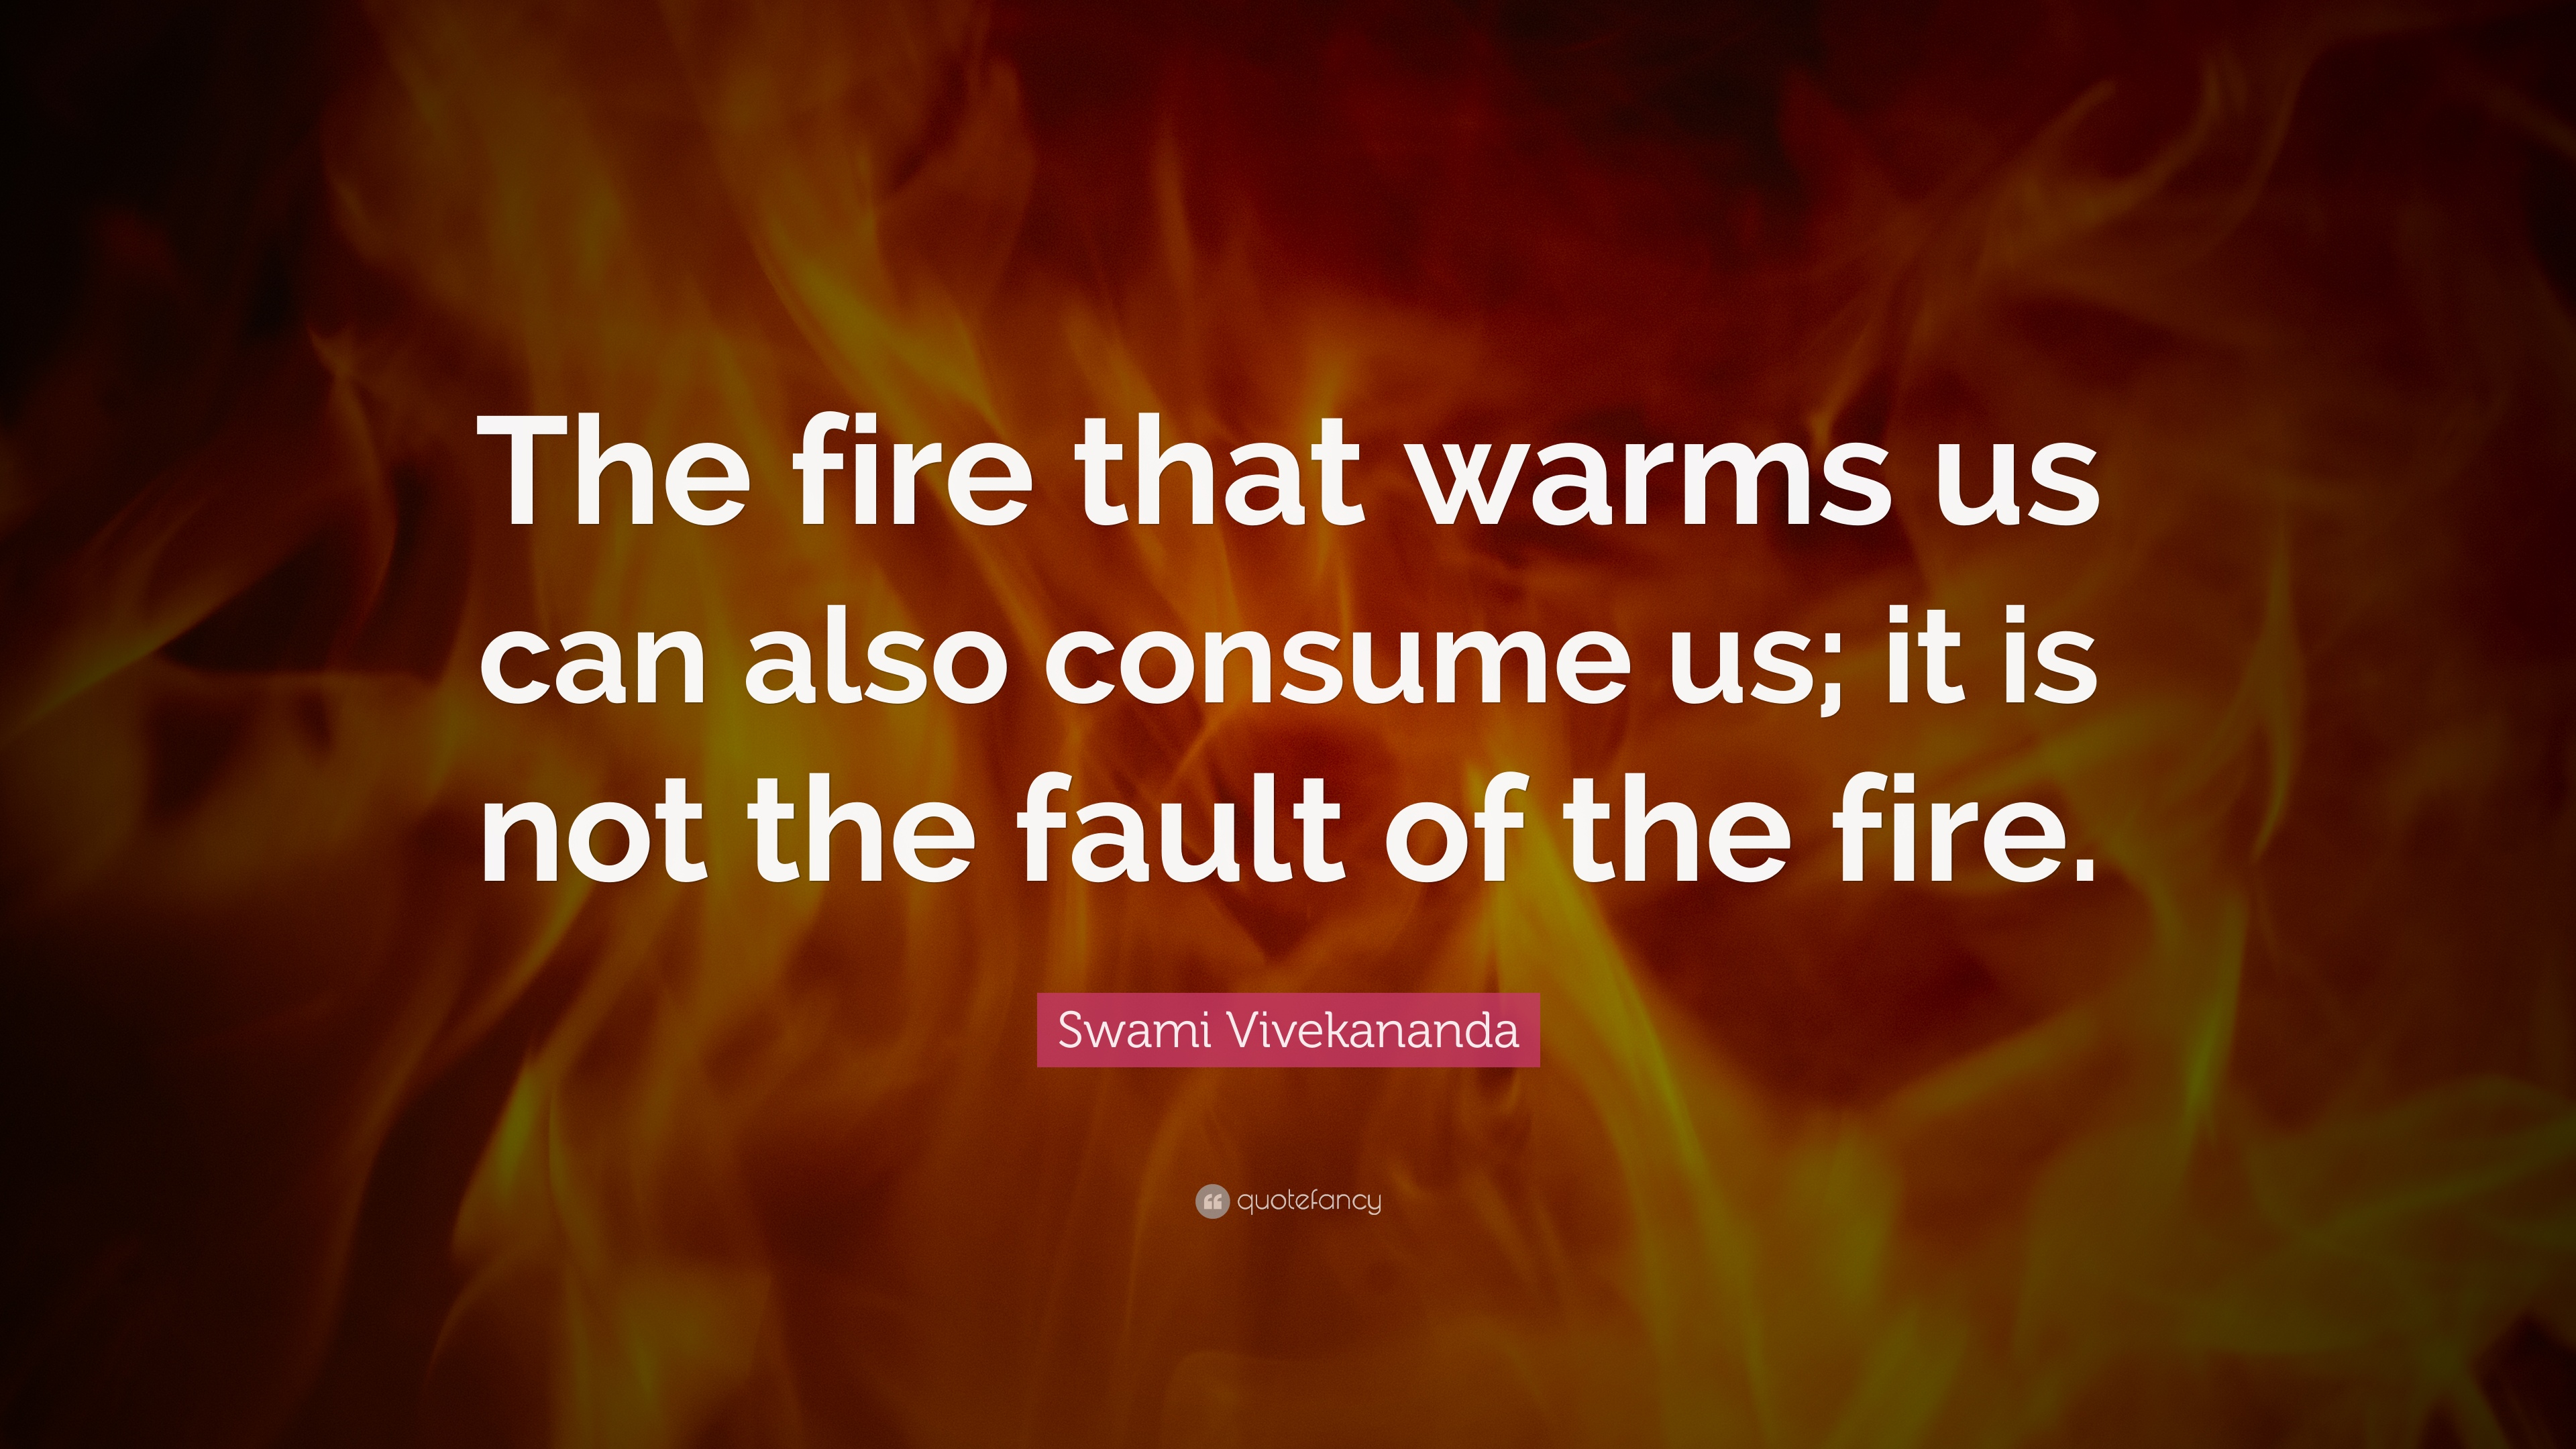 """Fire Quotes Swami Vivekananda Quote: """"The fire that warms us can also consume  Fire Quotes"""